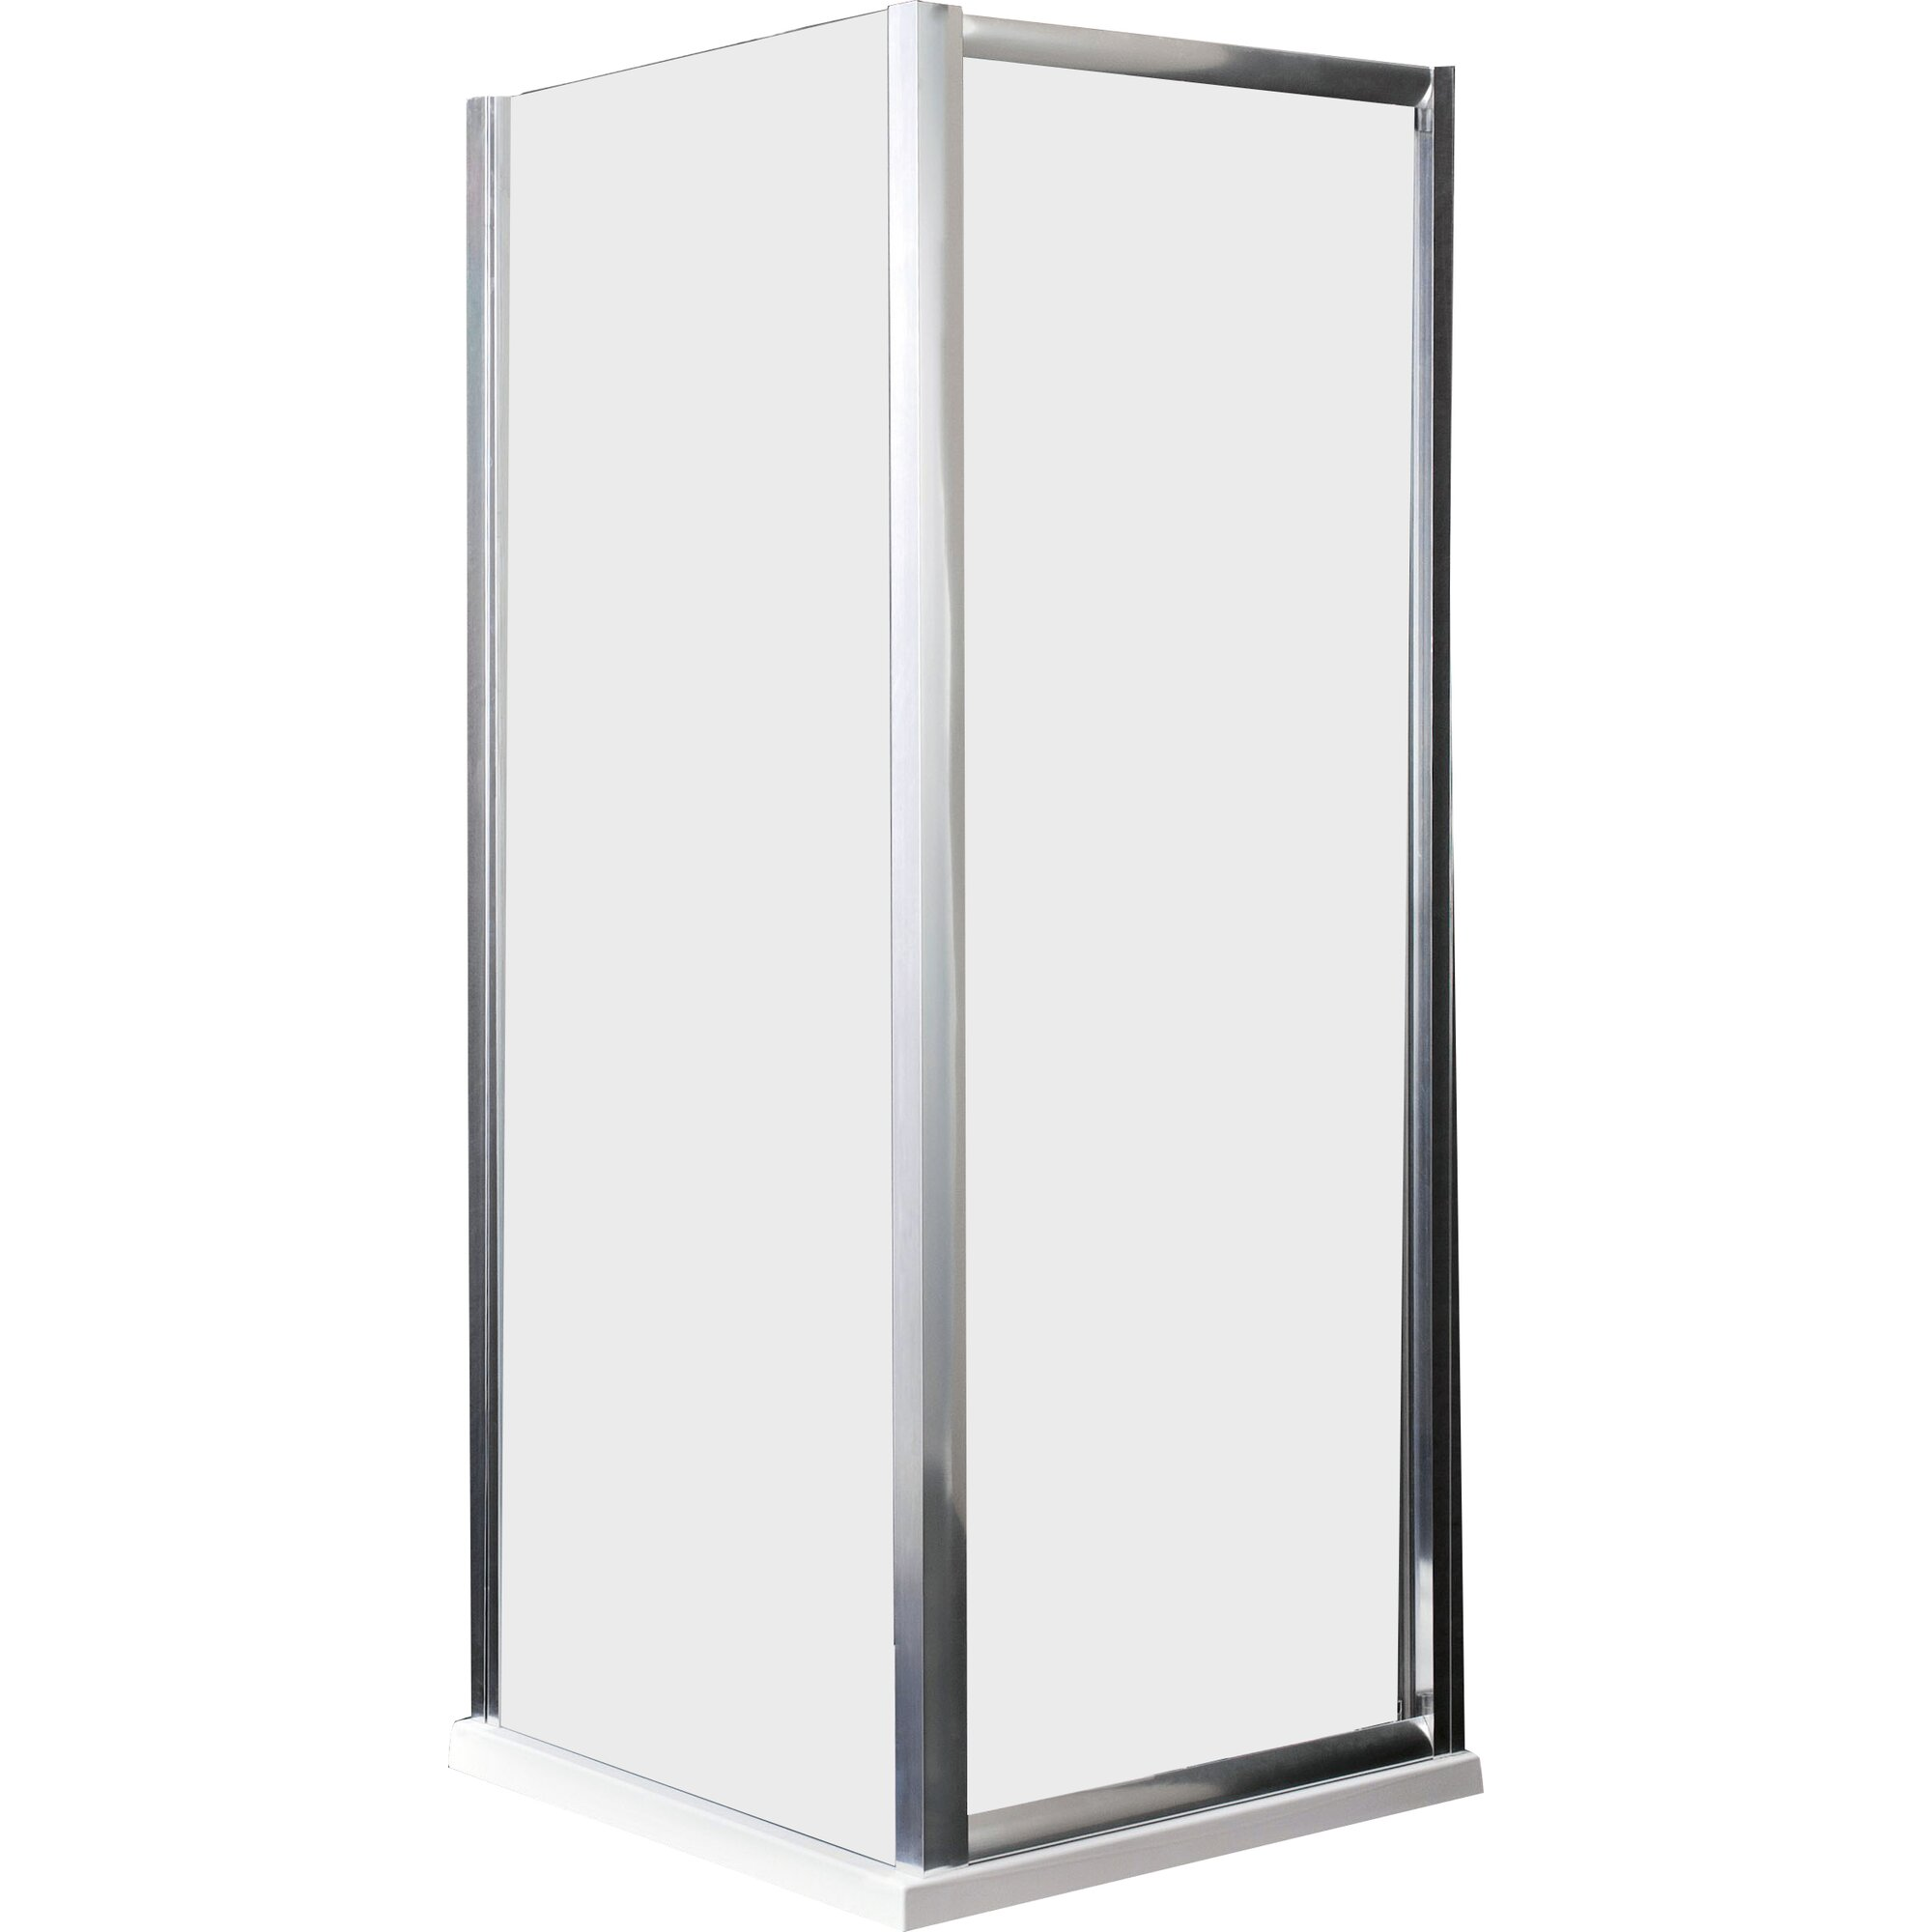 Merlyn 8 series sliding door amp inline panel - Ella 185cm X 88cm Folding Shower Door